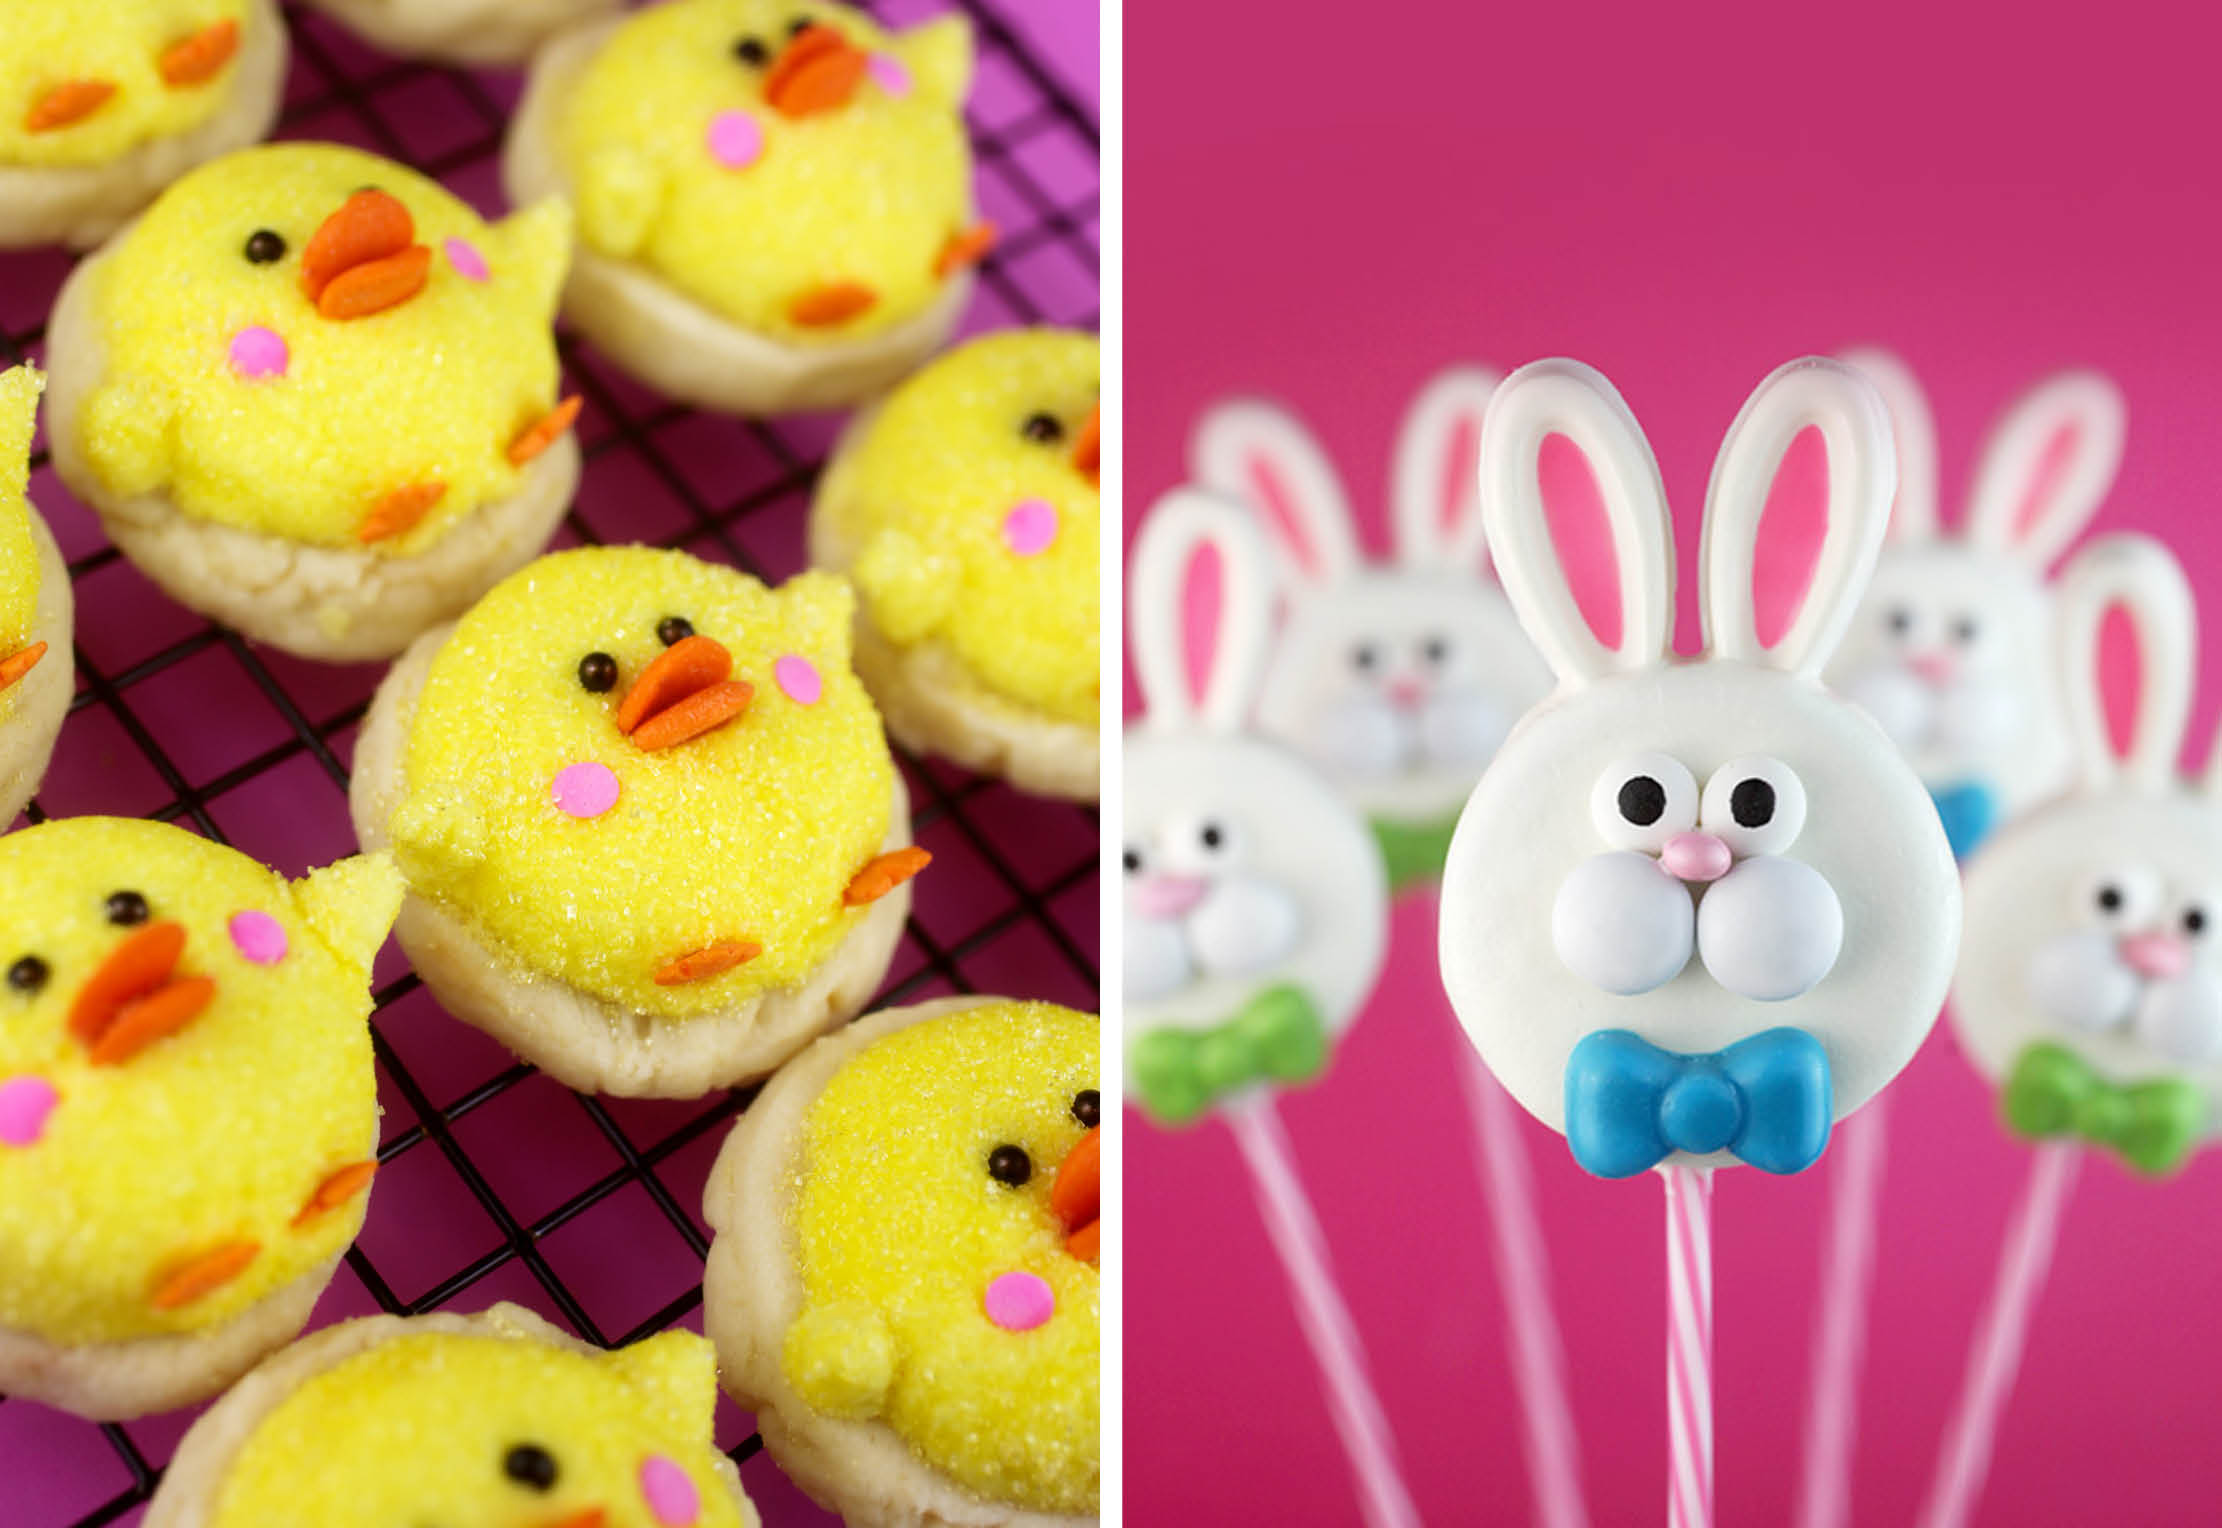 Duckling Cookies and Oreo Bunnies